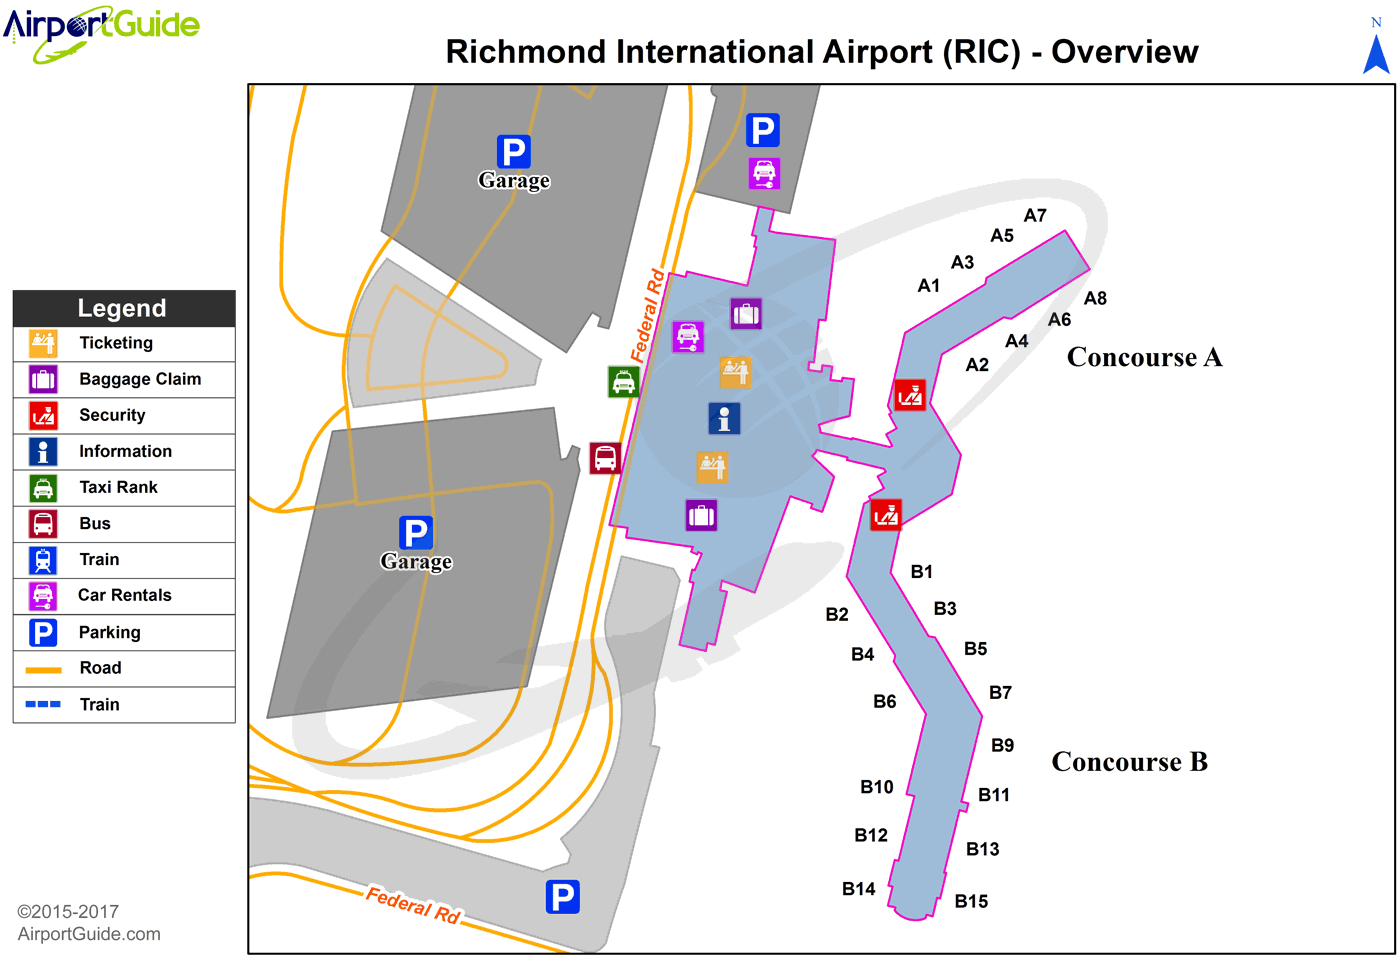 Richmond - Richmond International (RIC) Airport Terminal Map - Overview